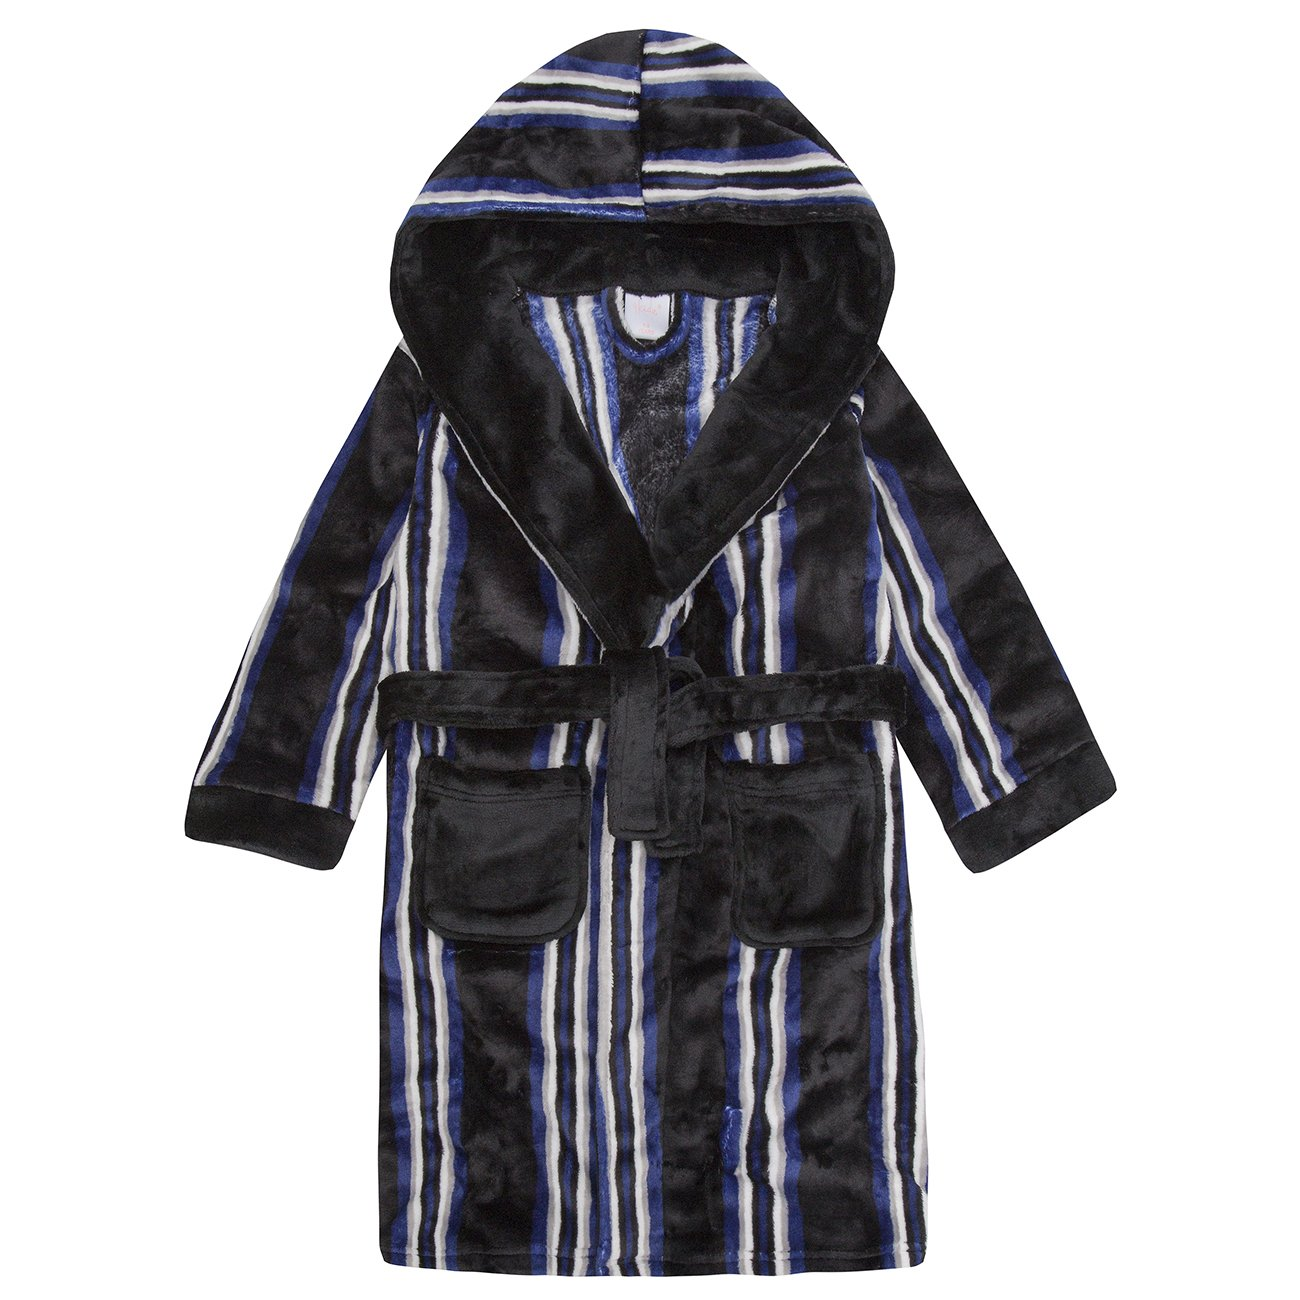 4Kidz Childrens Boys Striped Dressing Gown - Flannel Fleece Hooded Night Robe